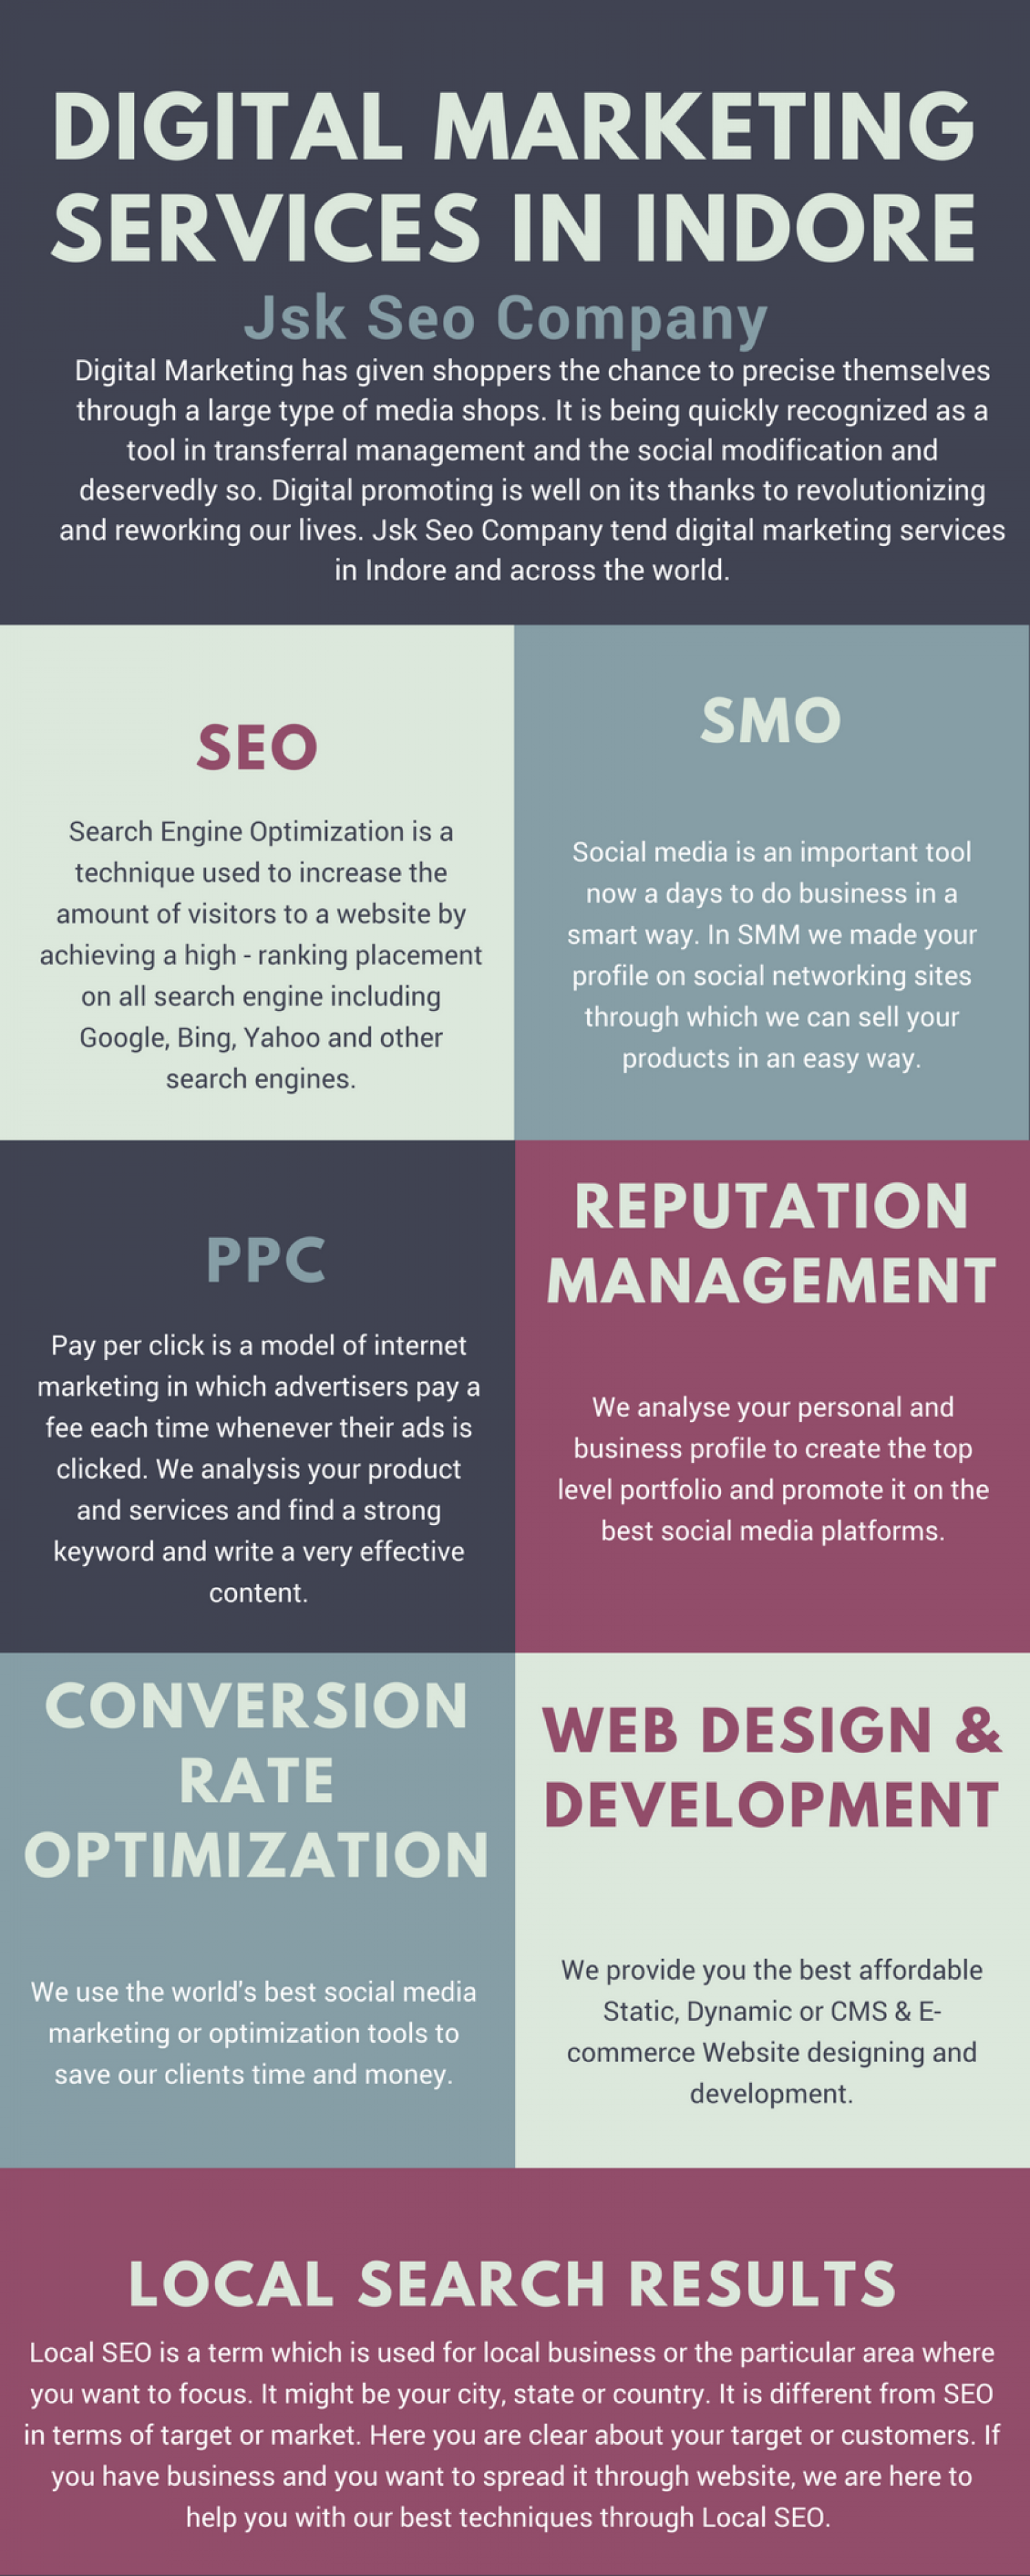 Best Seo Services In Indore   Infographic